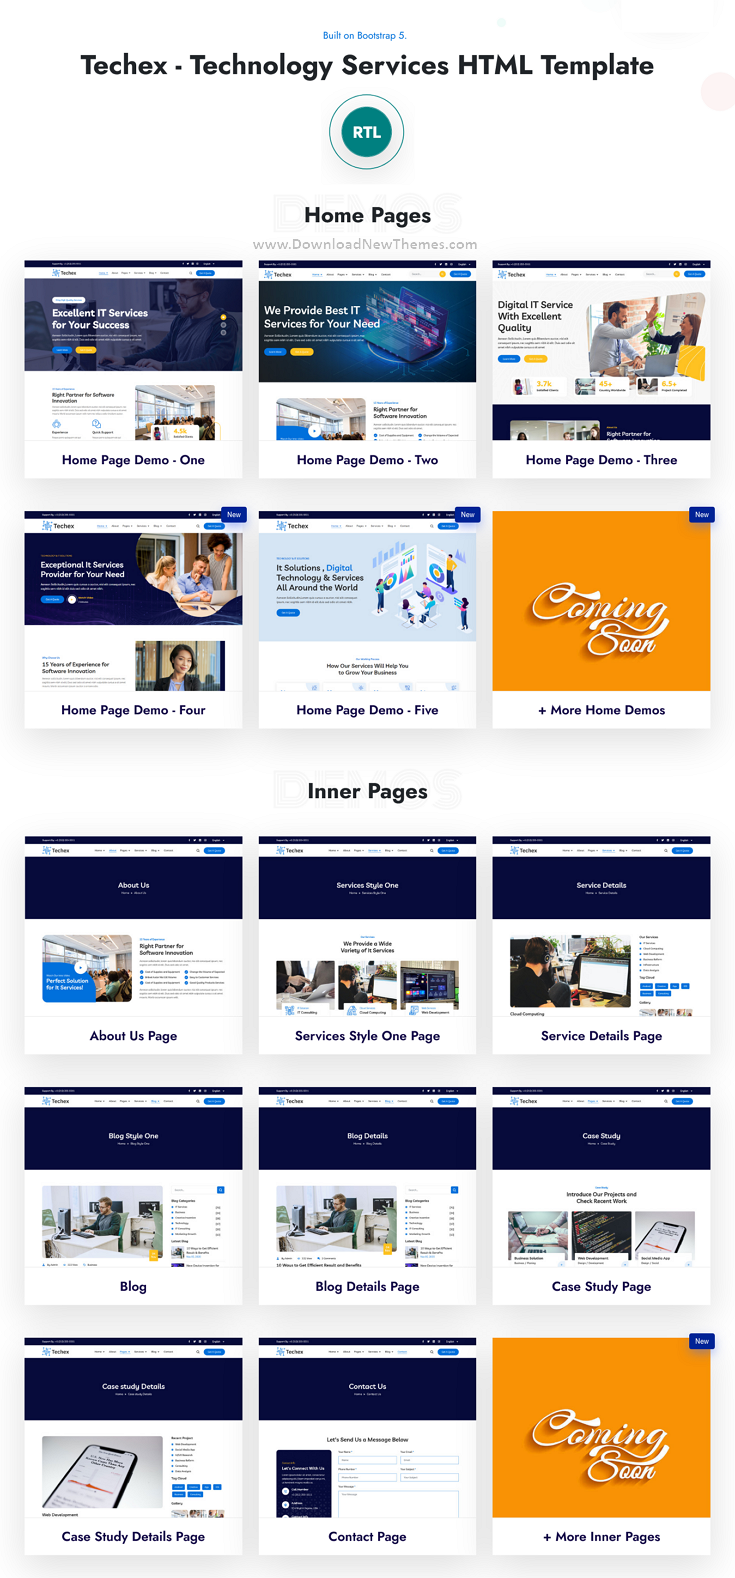 Techex - Technology Services HTML Template